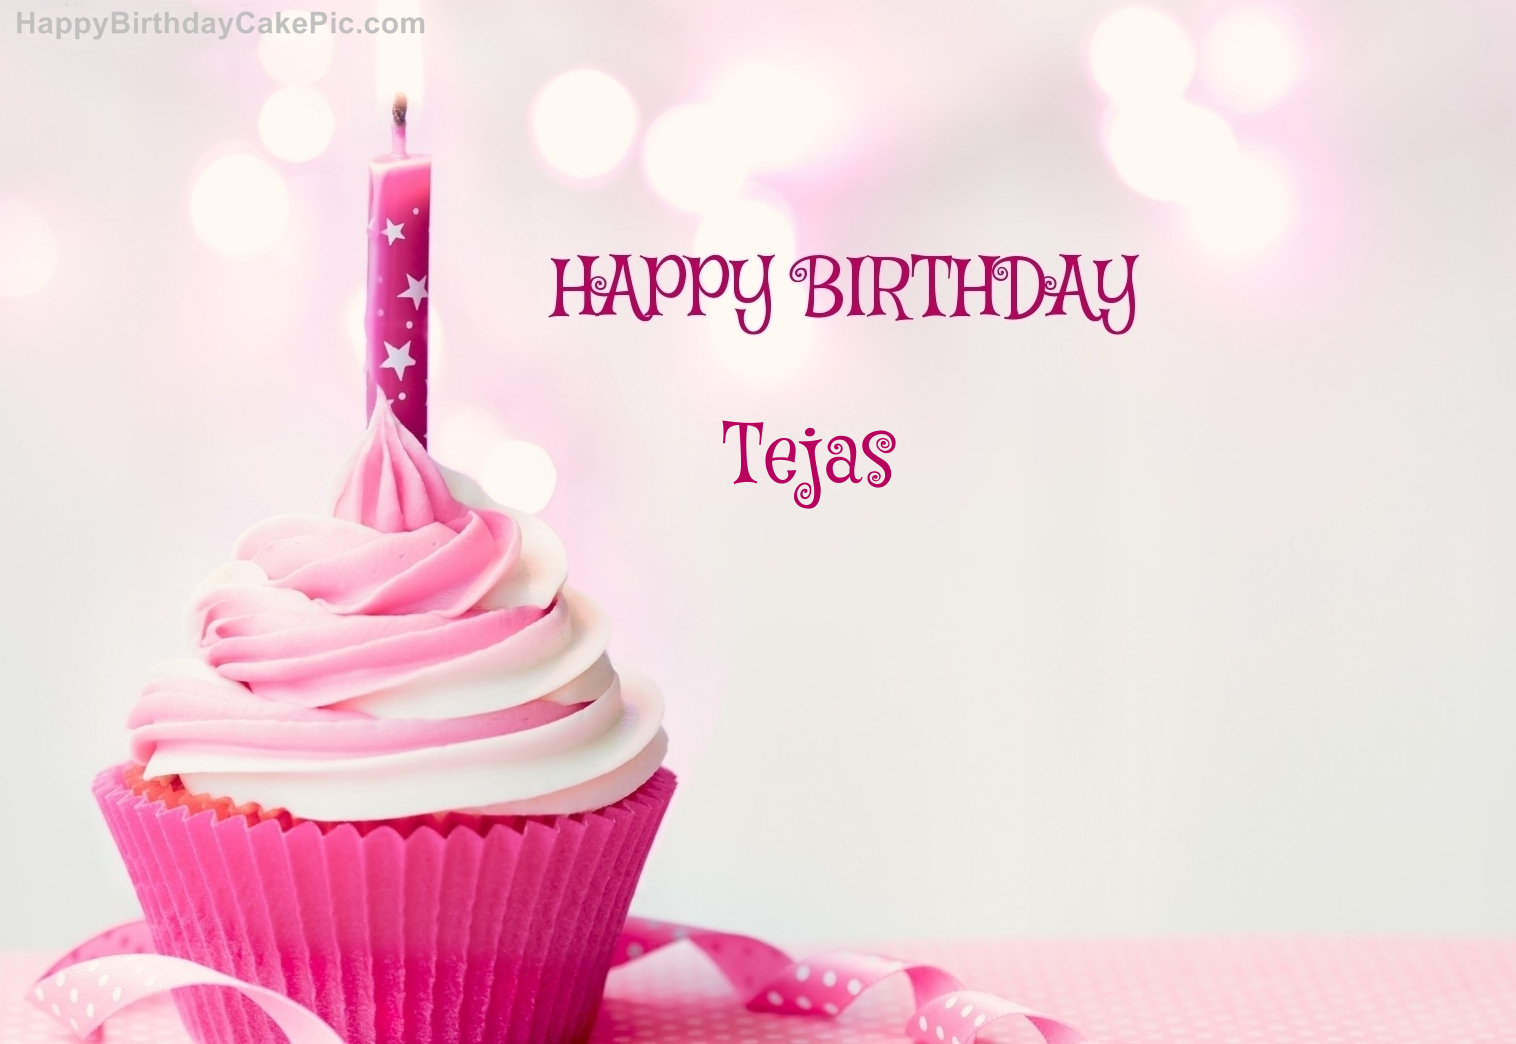 Happy Birthday Cupcake Candle Pink Cake For Tejas